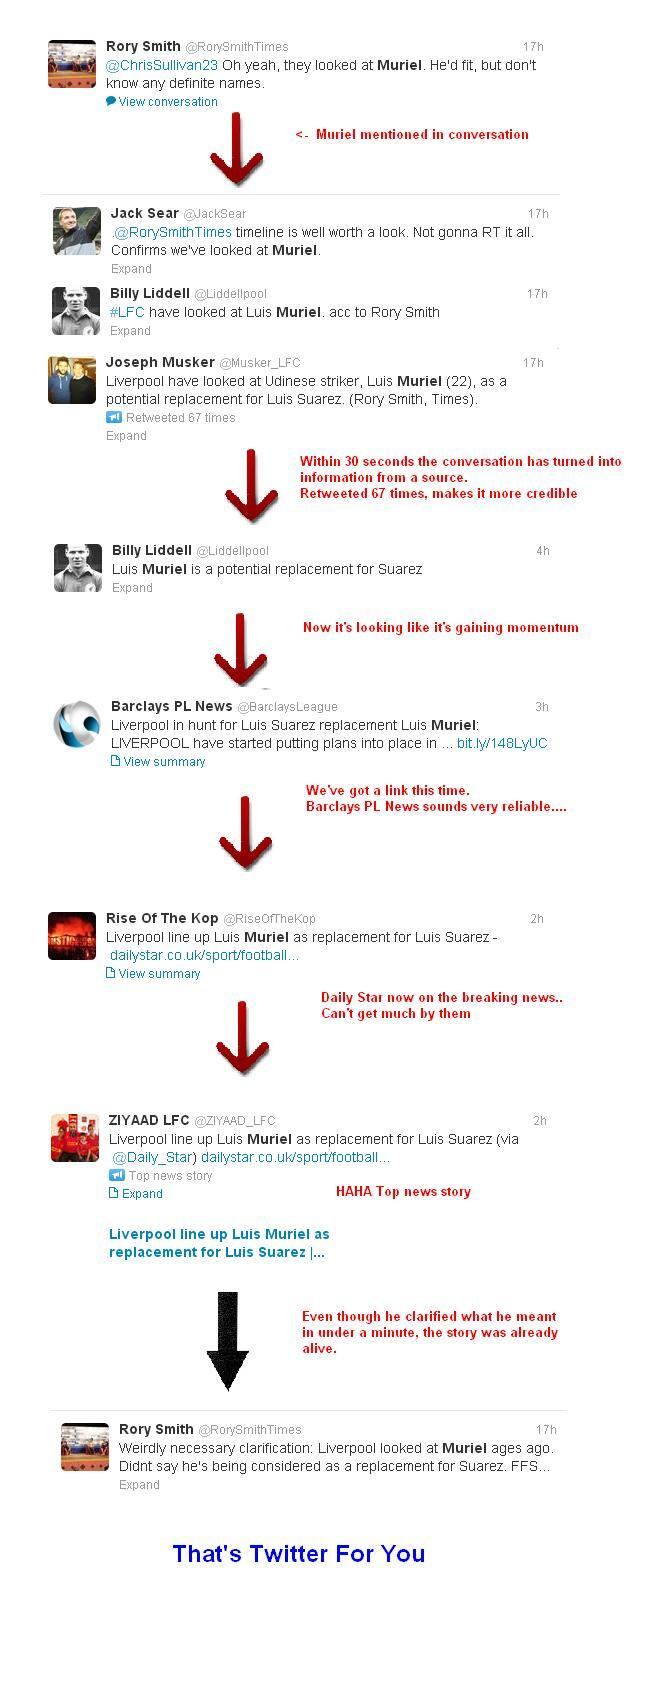 Flow Chart: The evolution of a Twitter rumours (case study: Liverpool chase Luis Muriel)